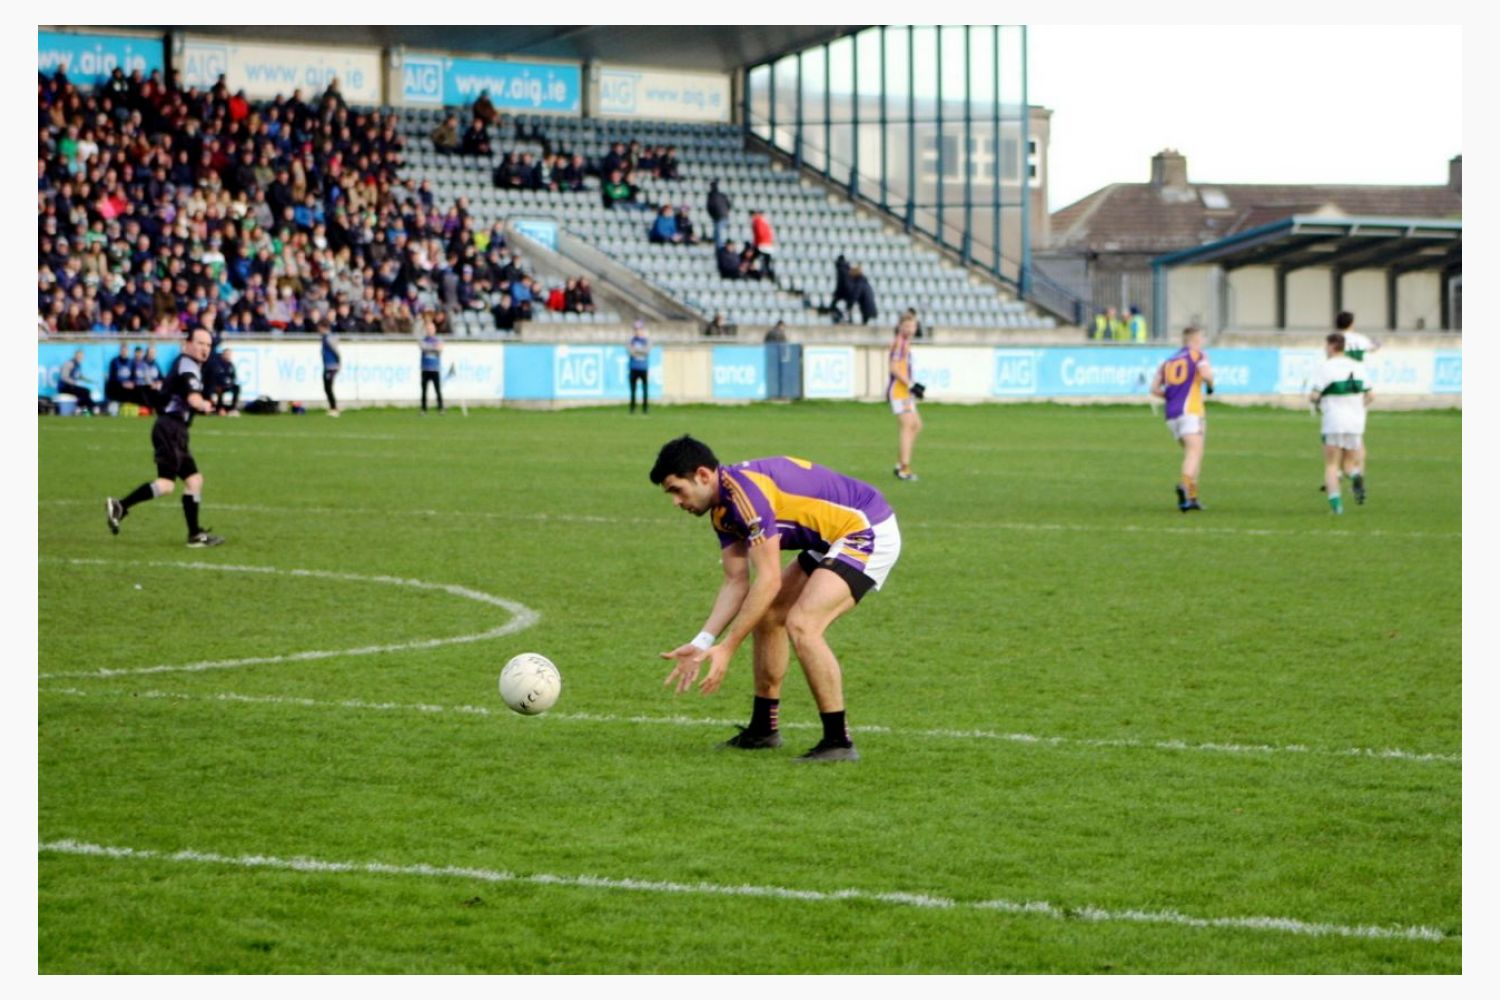 Leinster Semi Final - Crokes v Portlaoise